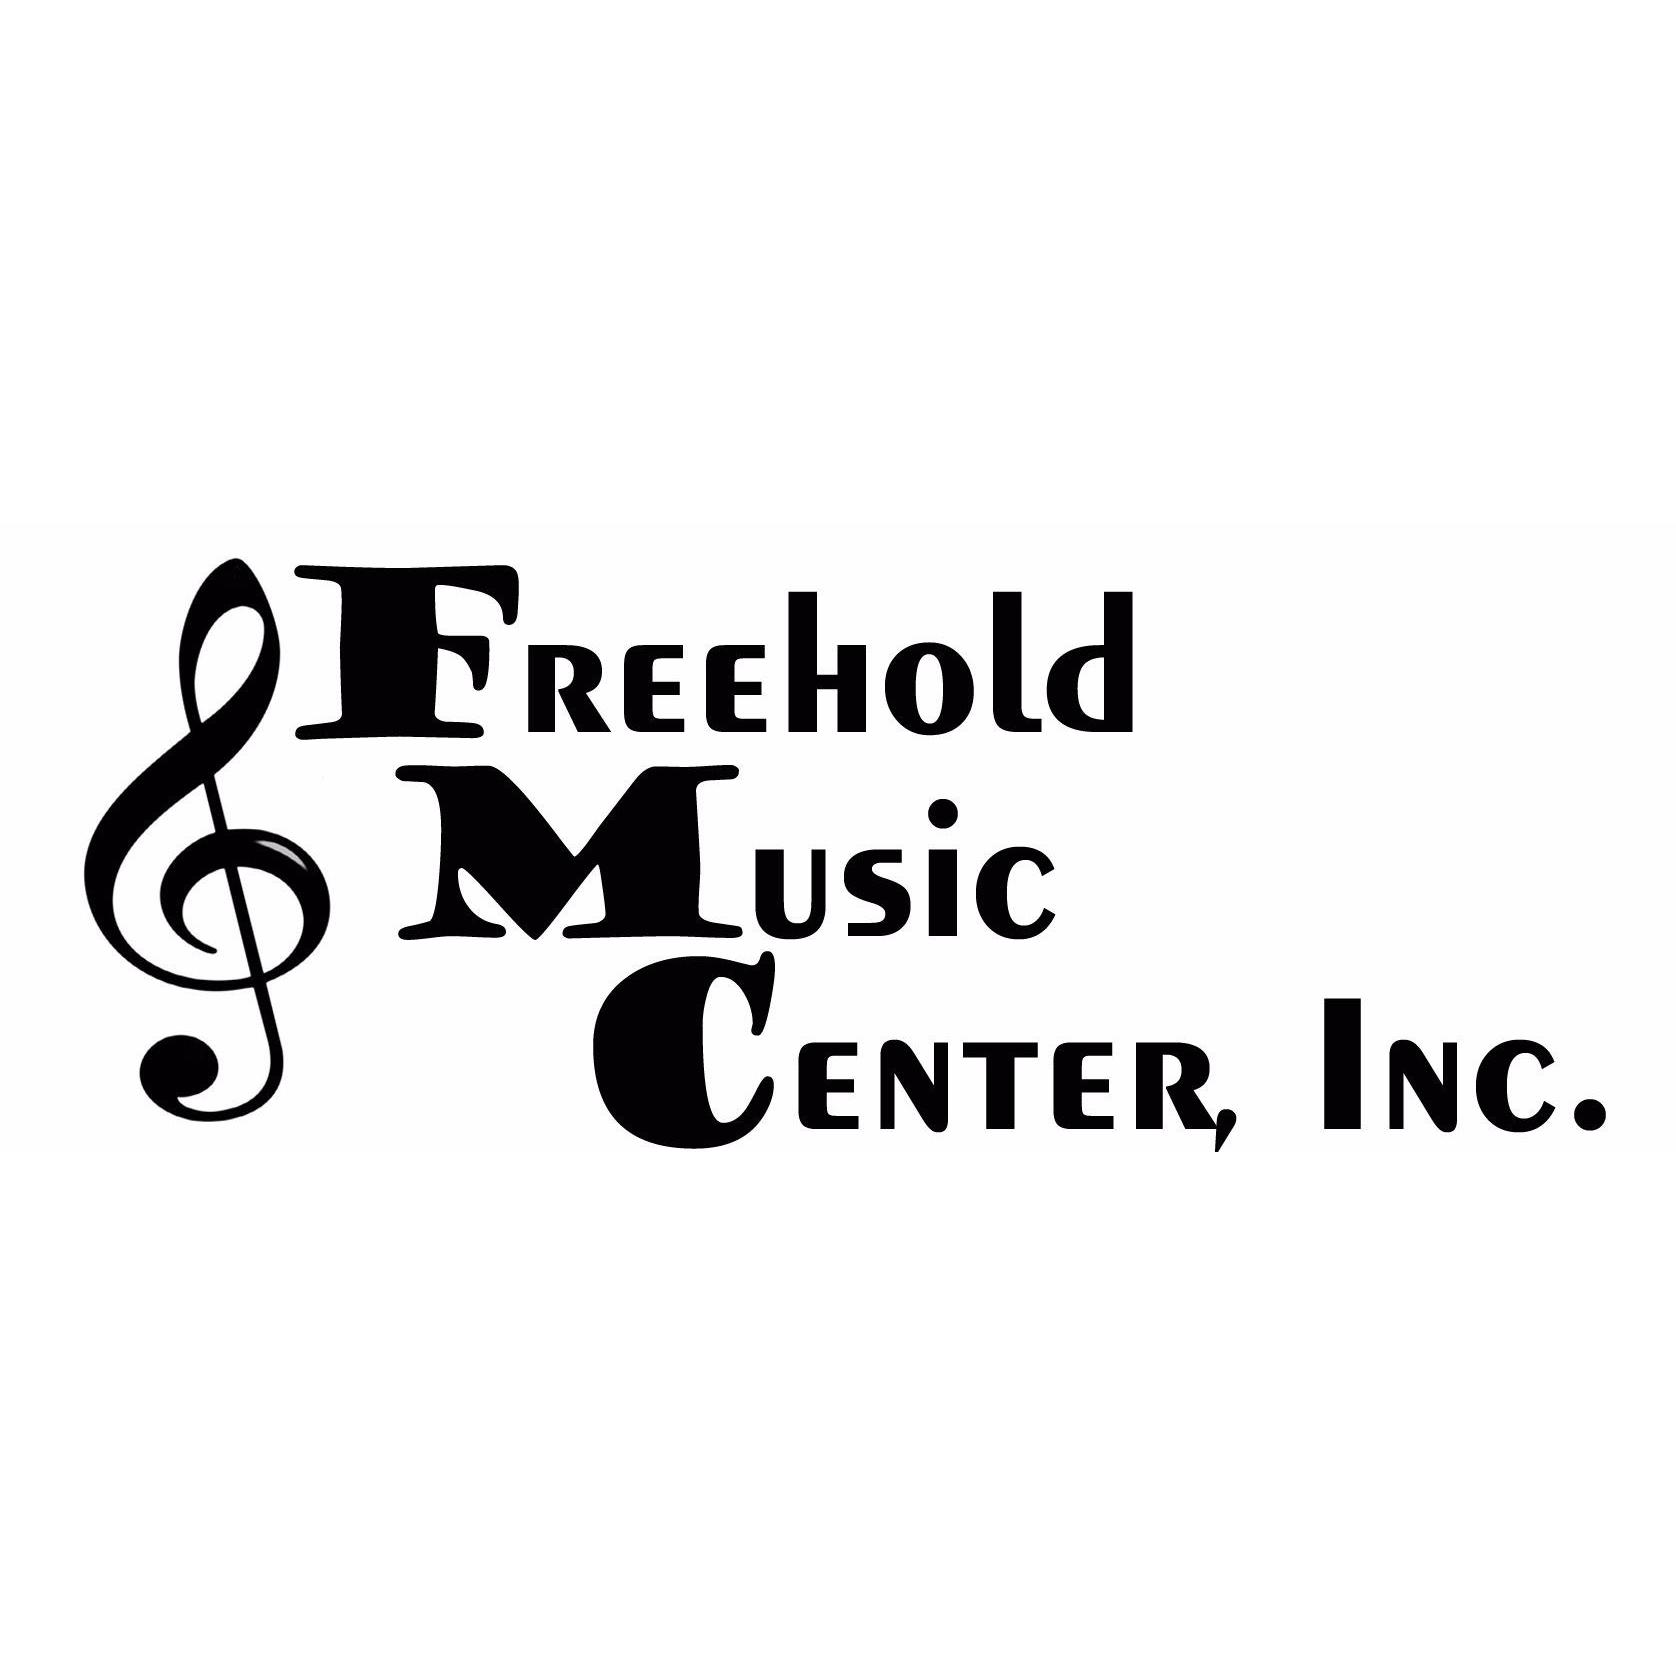 Freehold Music Center image 1